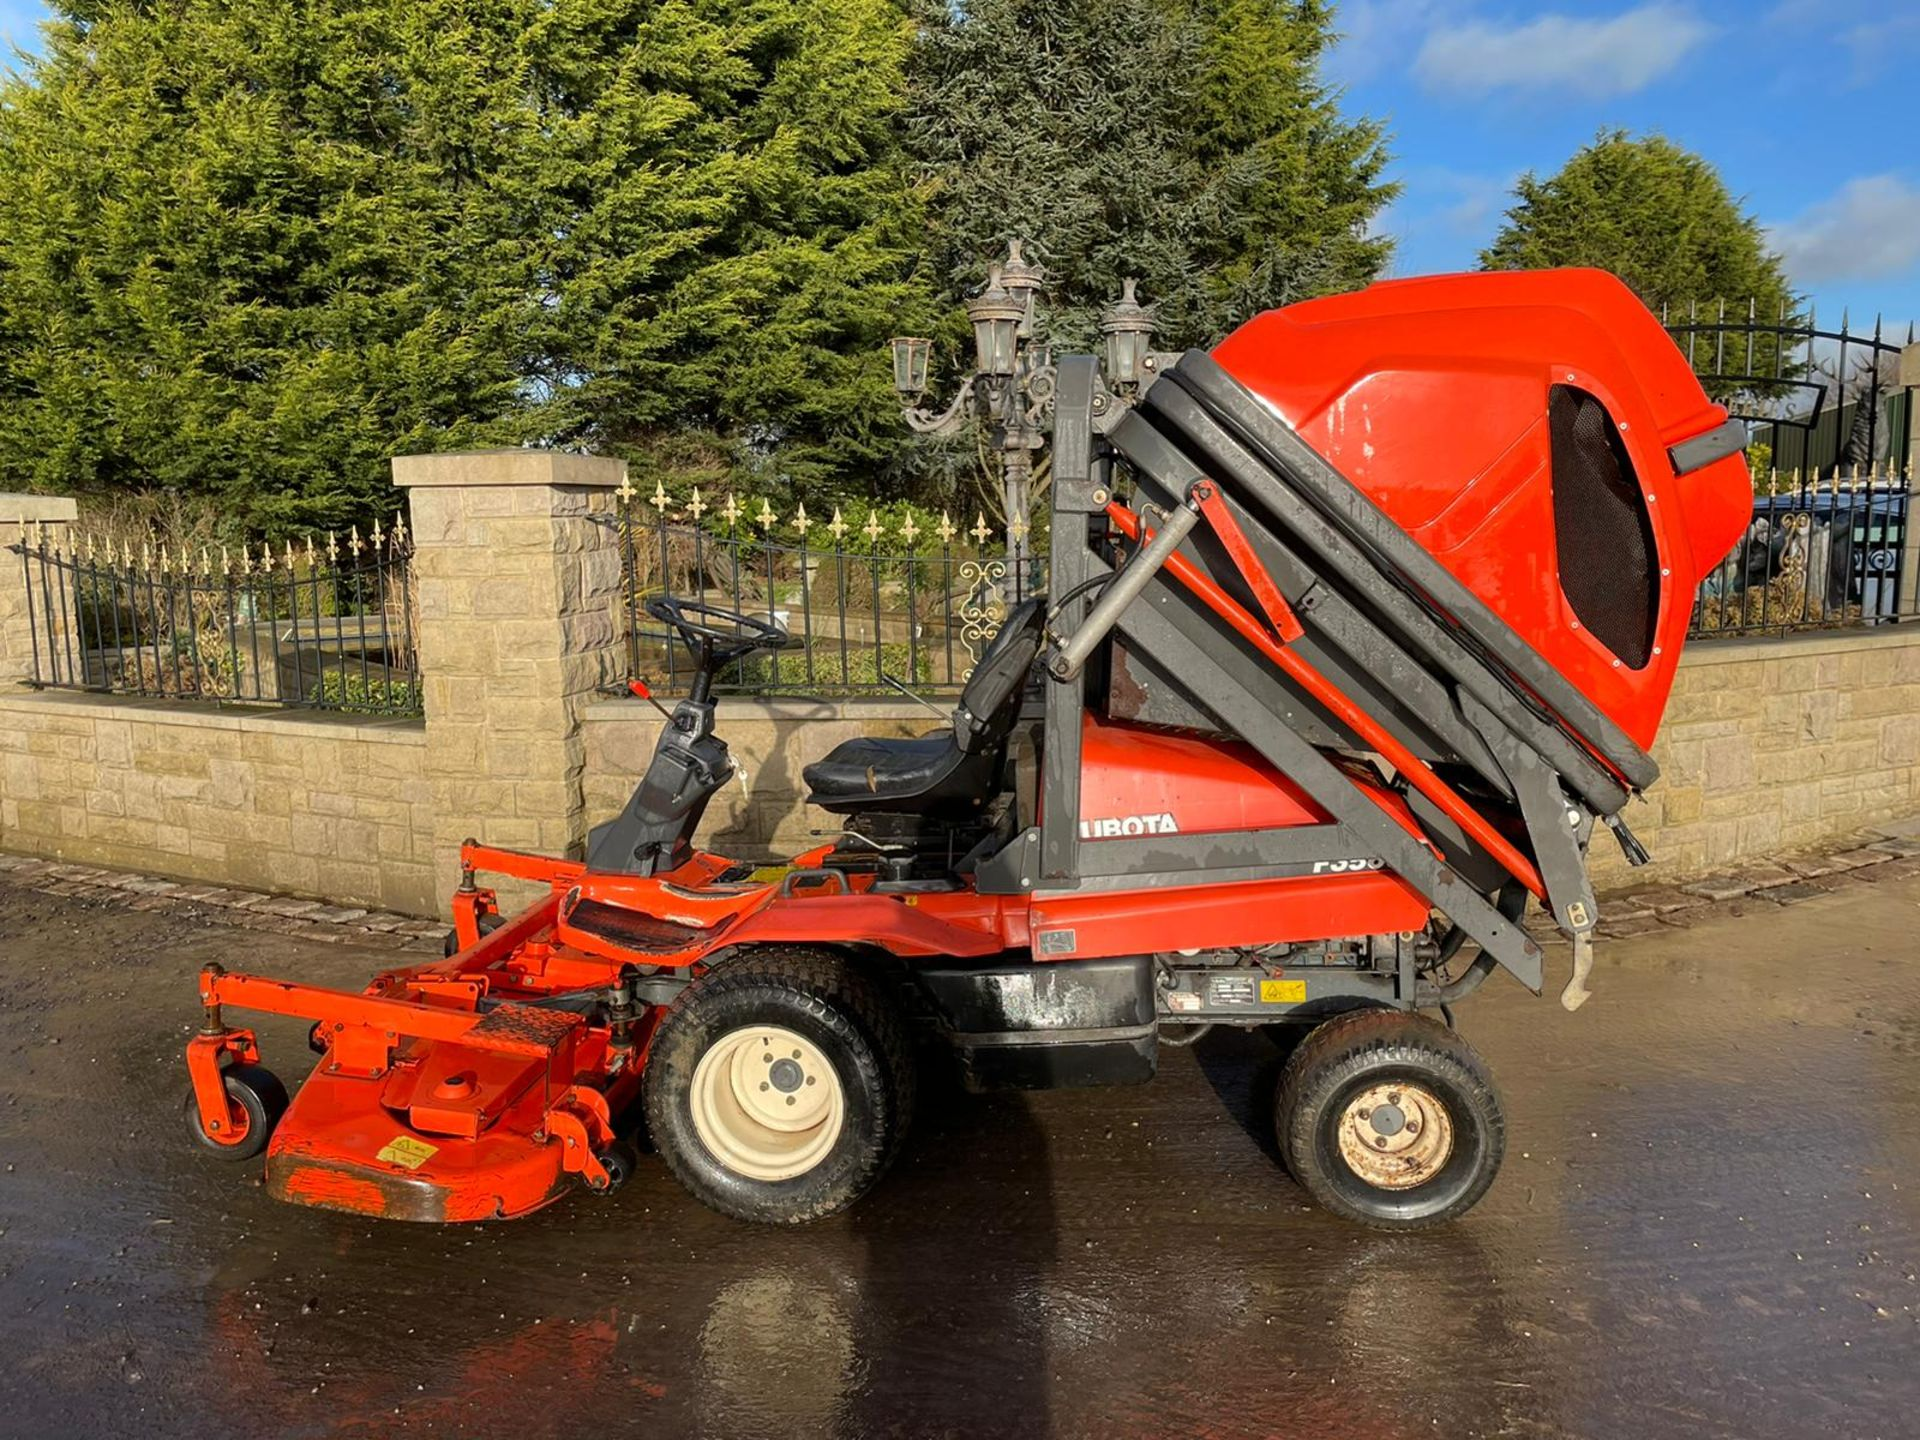 KUBOTA F3560 OUTFRONT RIDE ON LAWN MOWER, RUNS, DRIVES AND CUTS, HIGH TIP COLLECTOR *PLUS VAT* - Image 2 of 9